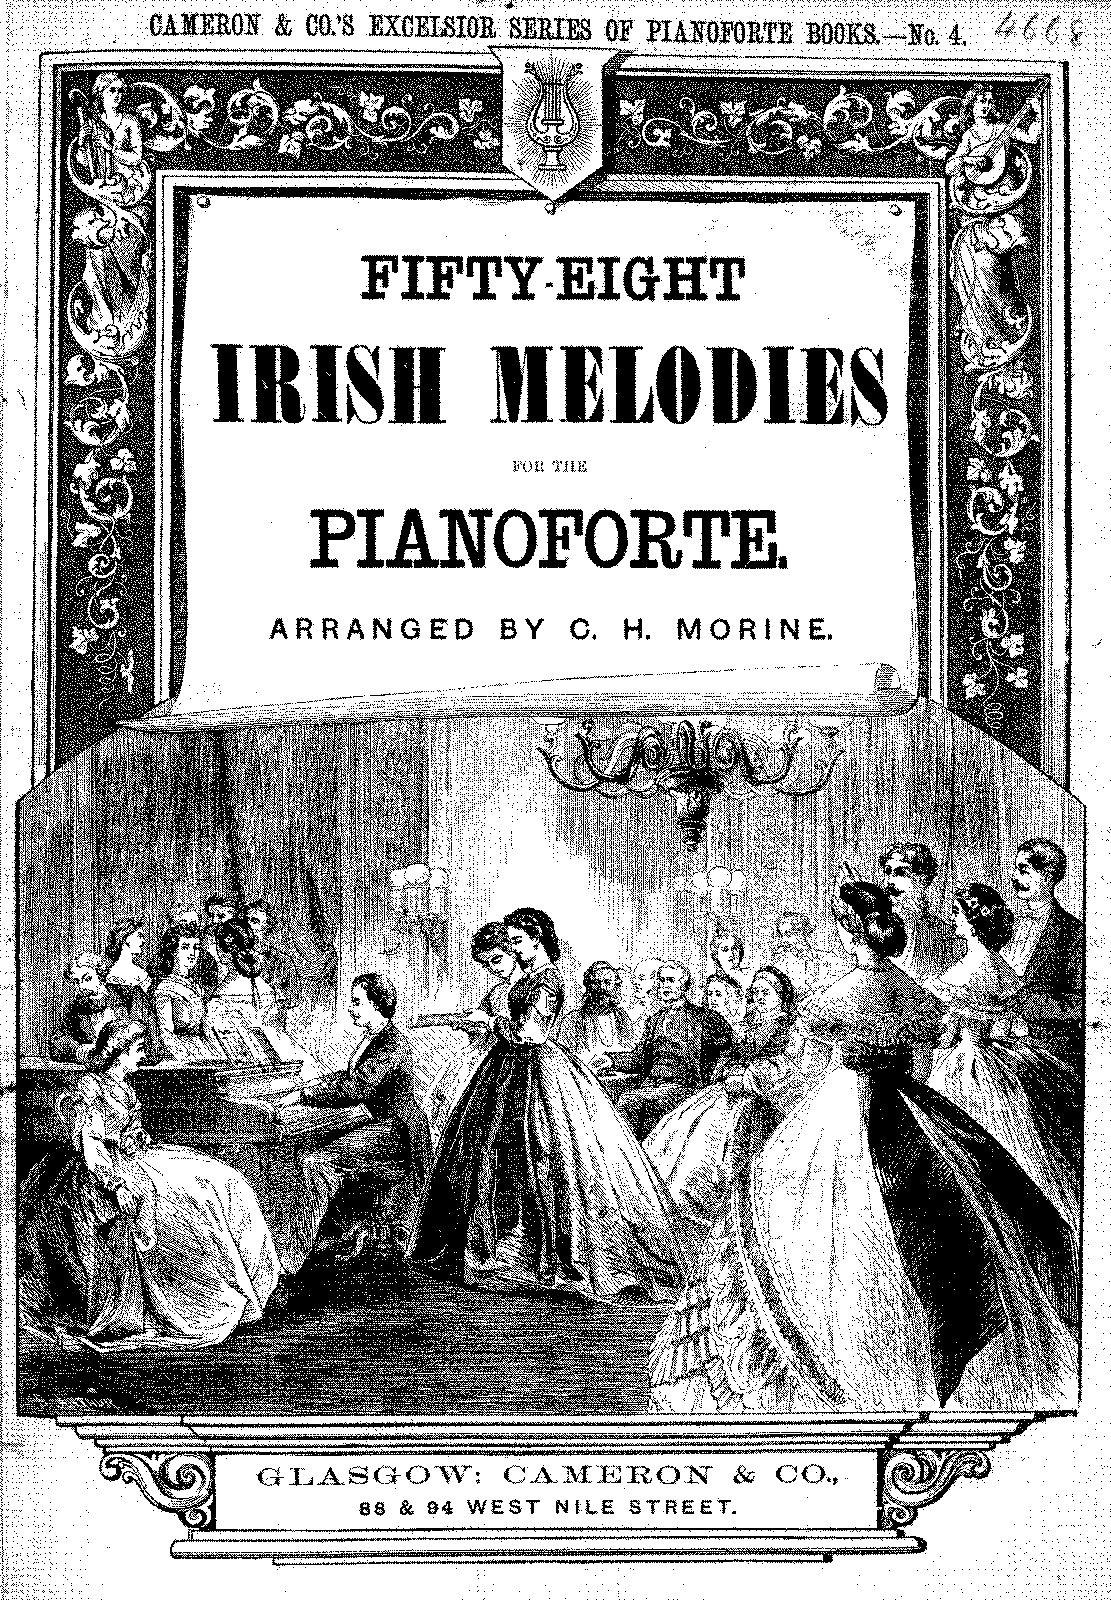 PMLP331892-morine 58 irish melodies.pdf